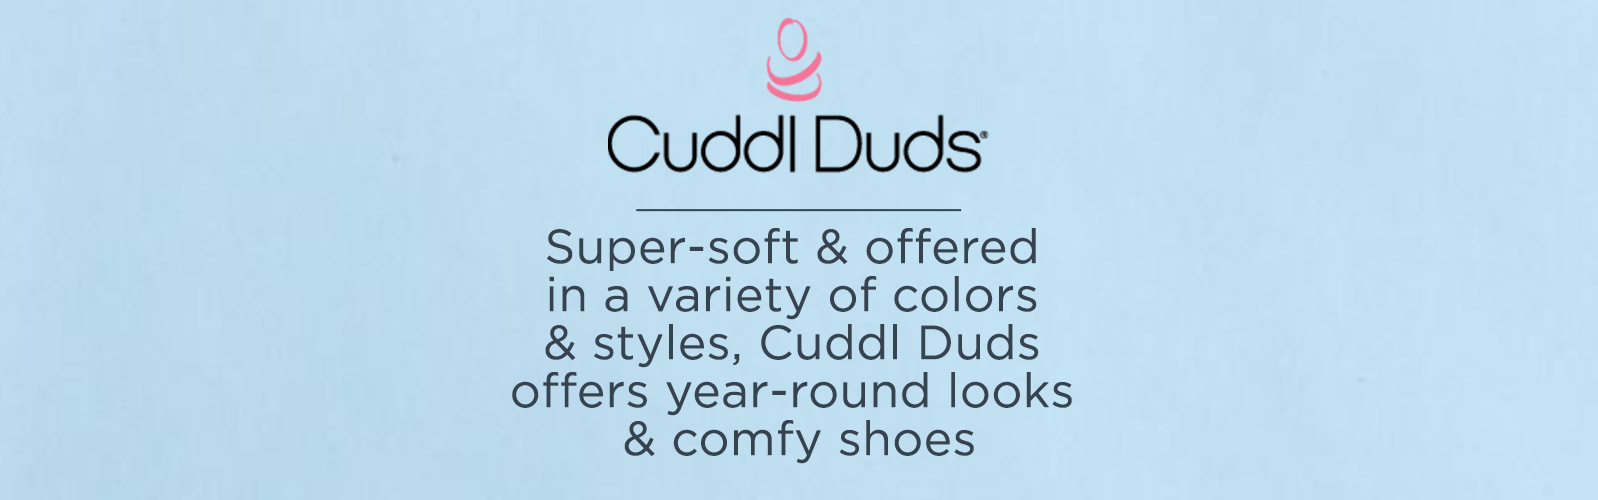 Cuddl Duds   Super-soft & offered in a variety of colors & styles, Cuddl Duds offers year-round looks & comfy shoes